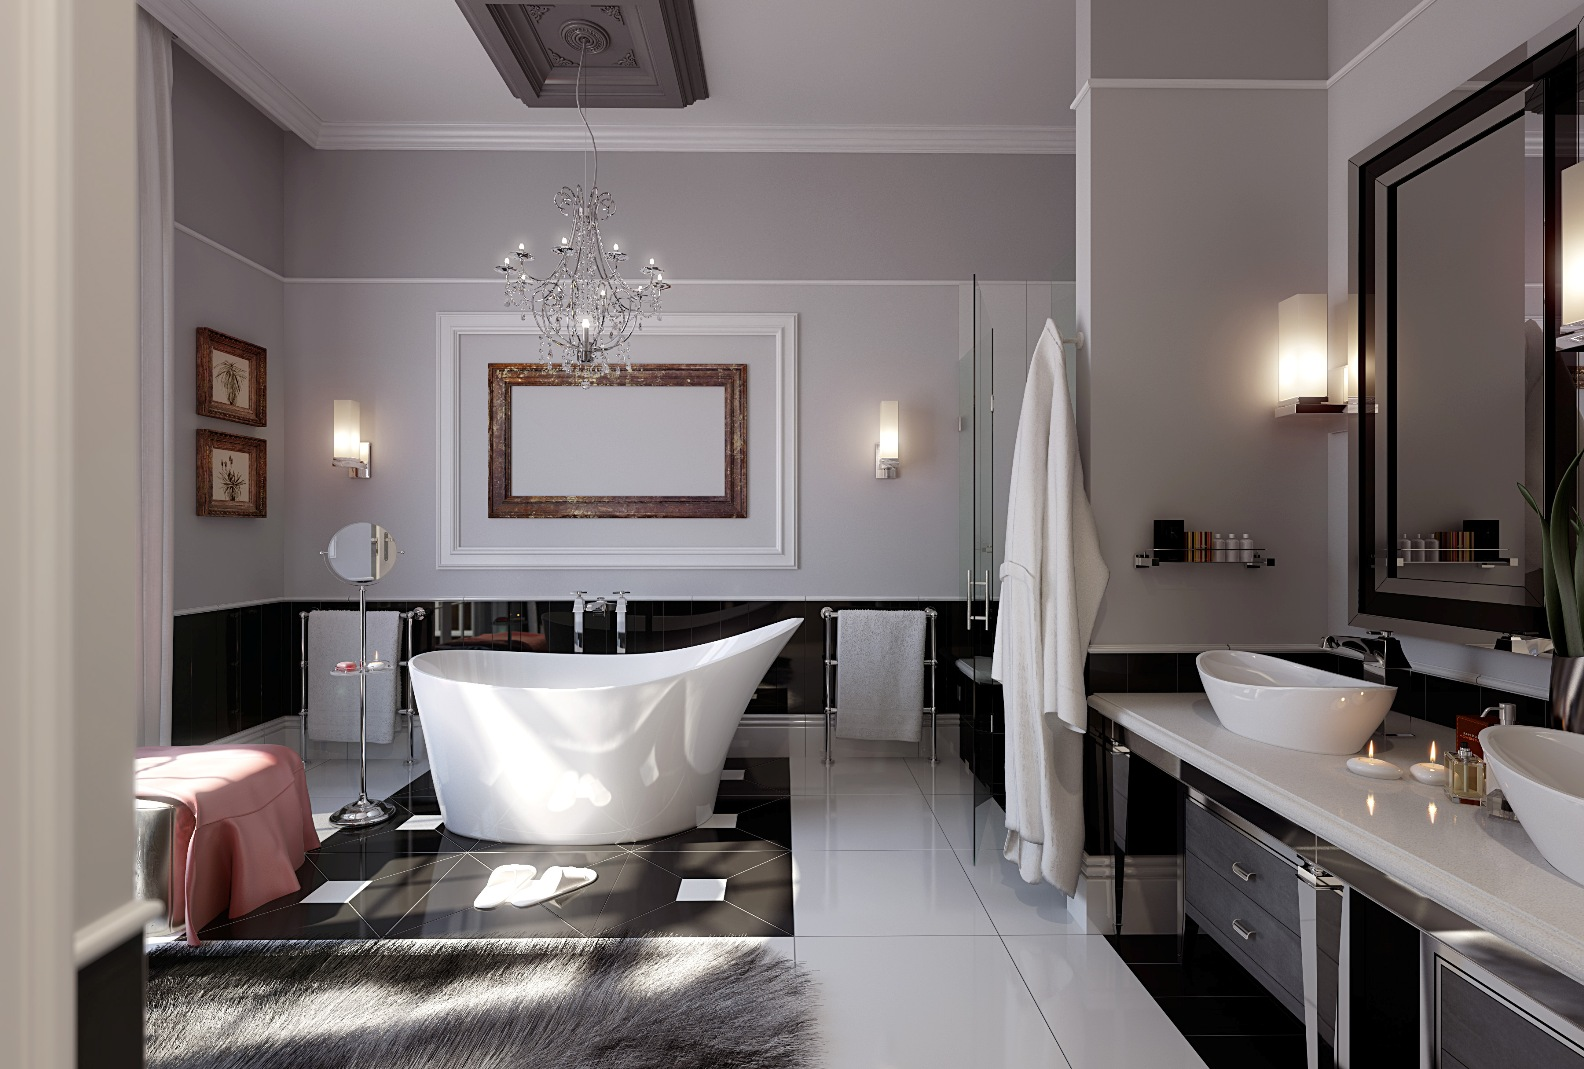 Hastings Luxury Designs Contemporary And Timeless Style I Ibathtileinternational Bath And Tile